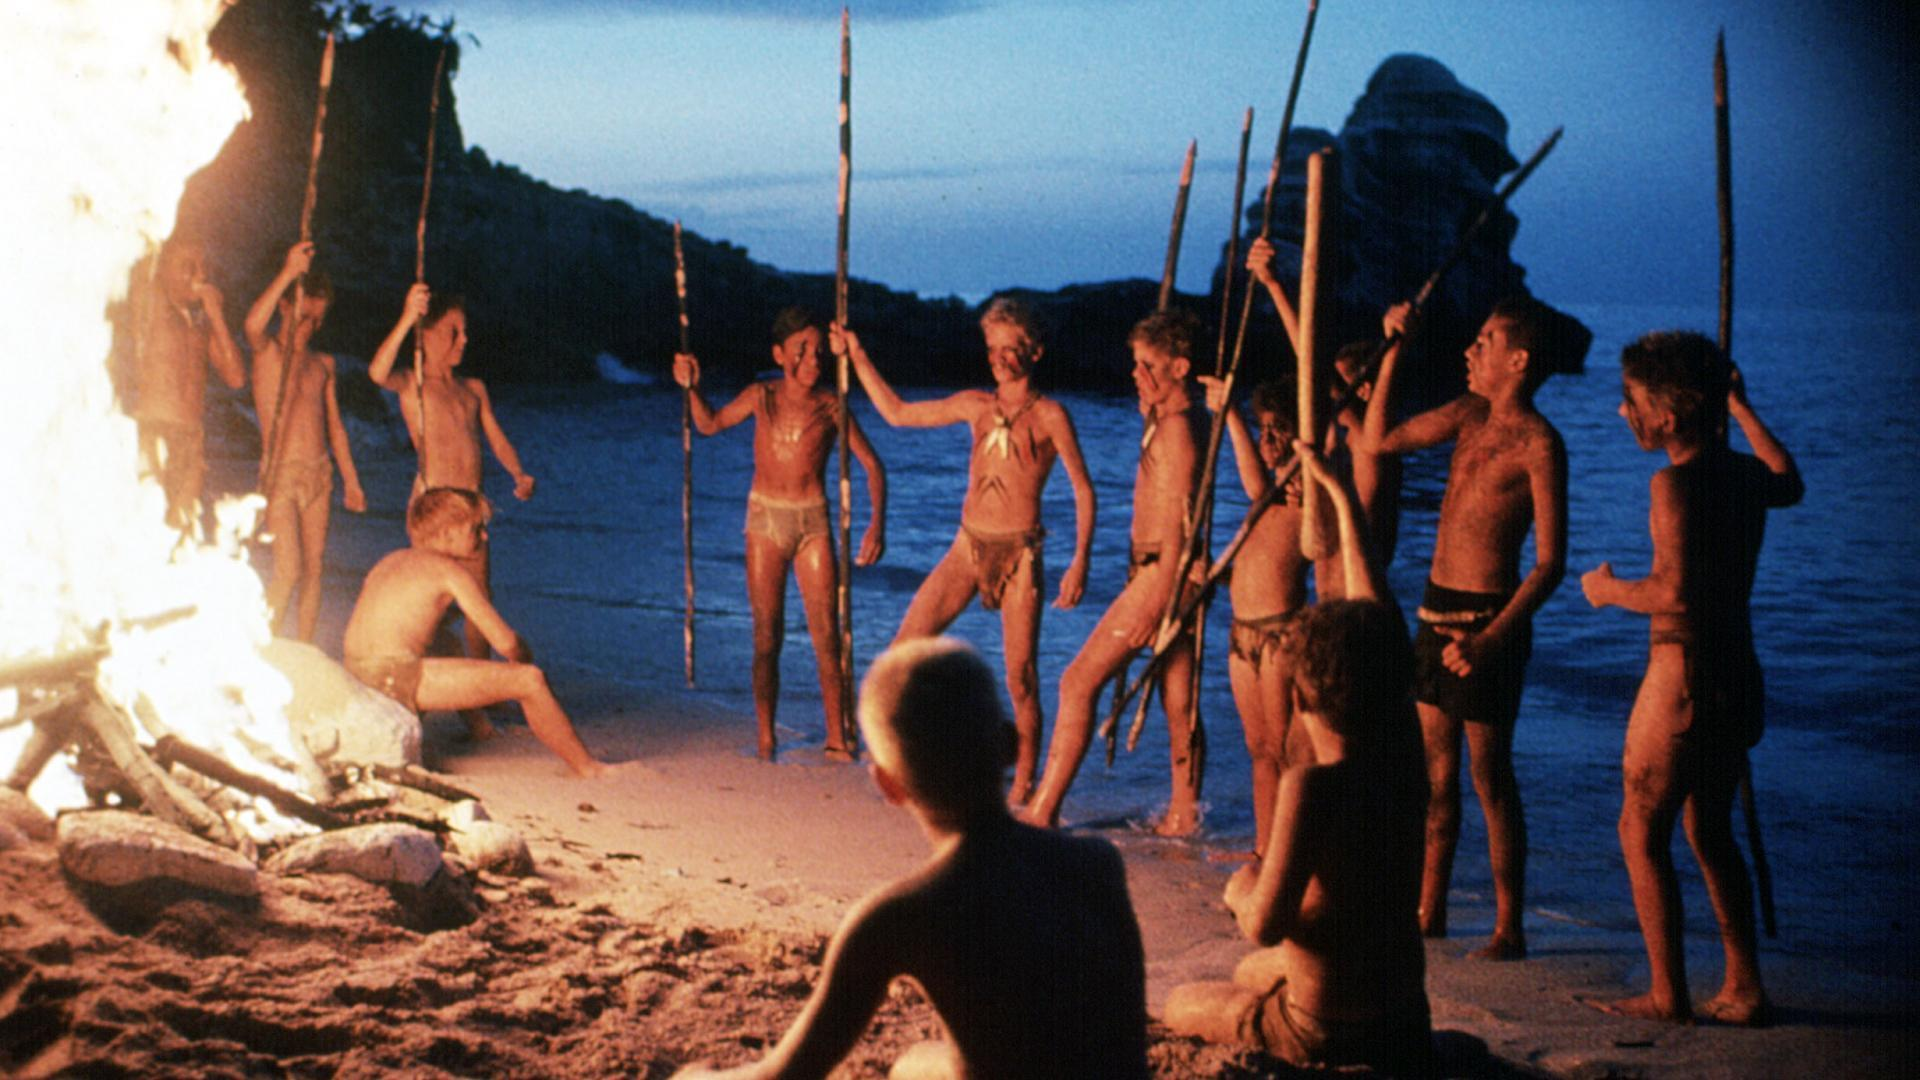 William Golding gratingly updated - boys from an American military academy stranded on a desert island in Lord of the Flies (1990)